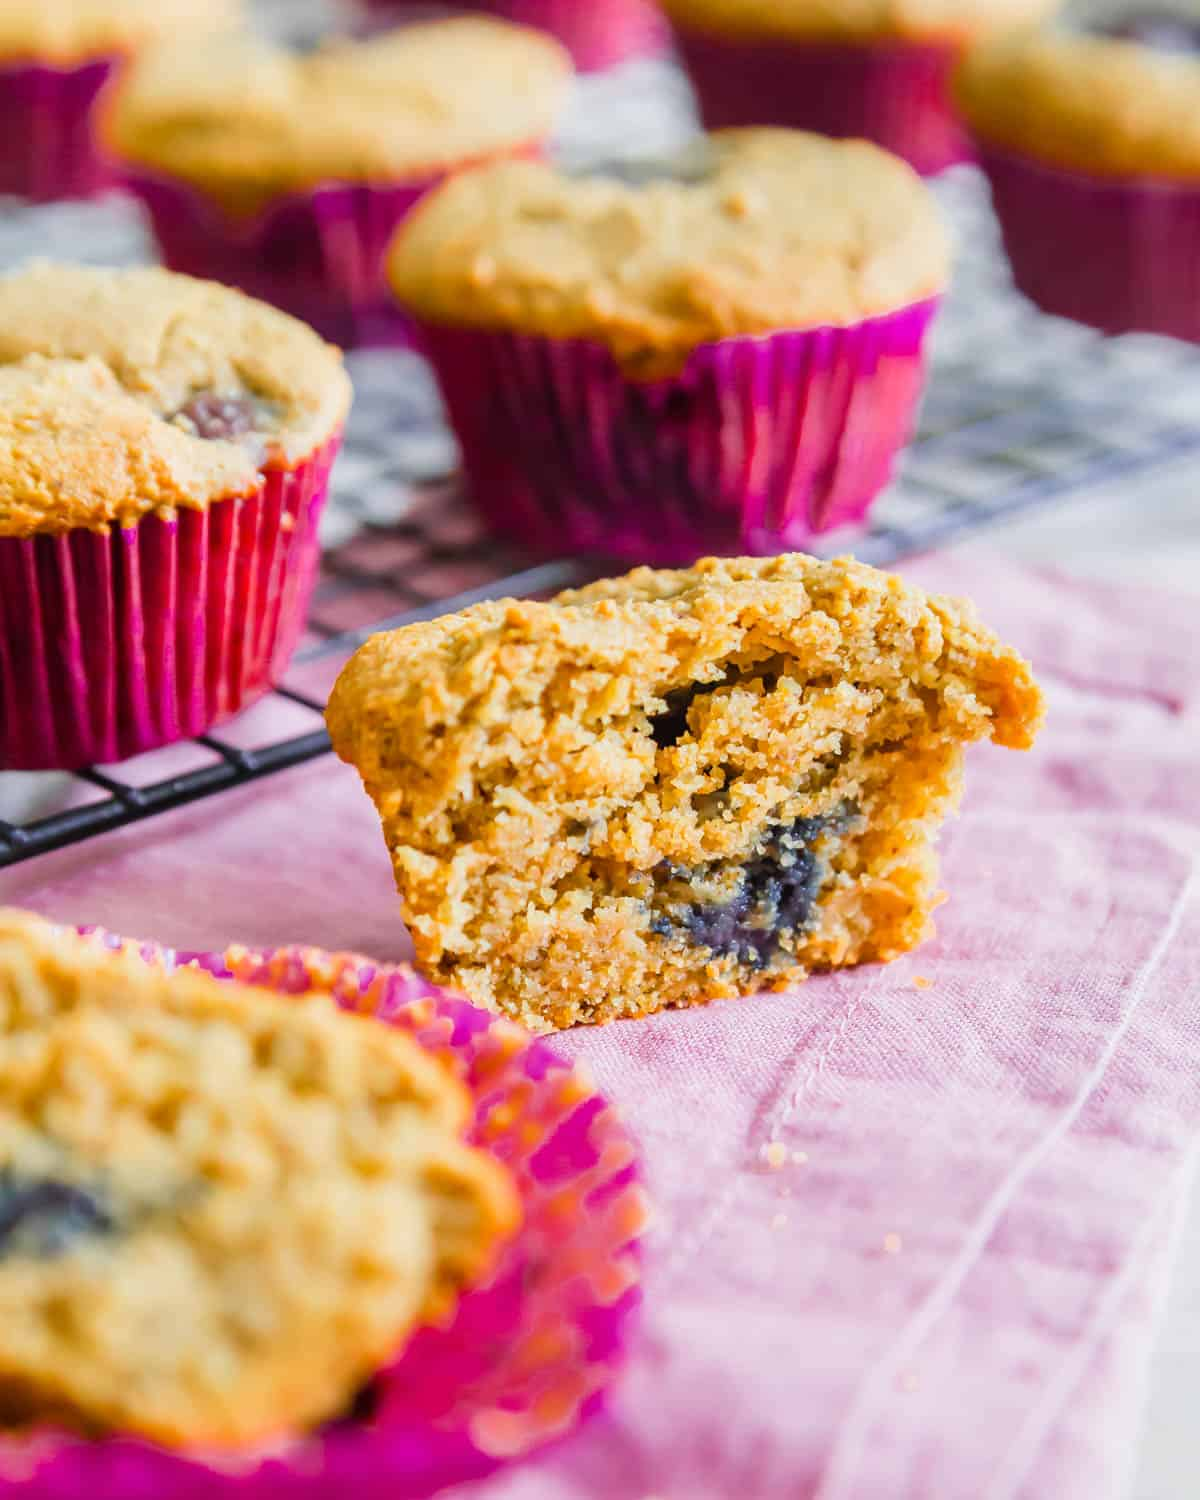 Healthy, vegan gluten-free corn muffins have a lovely crumbly texture and slightly sweet almond cherry flavor.